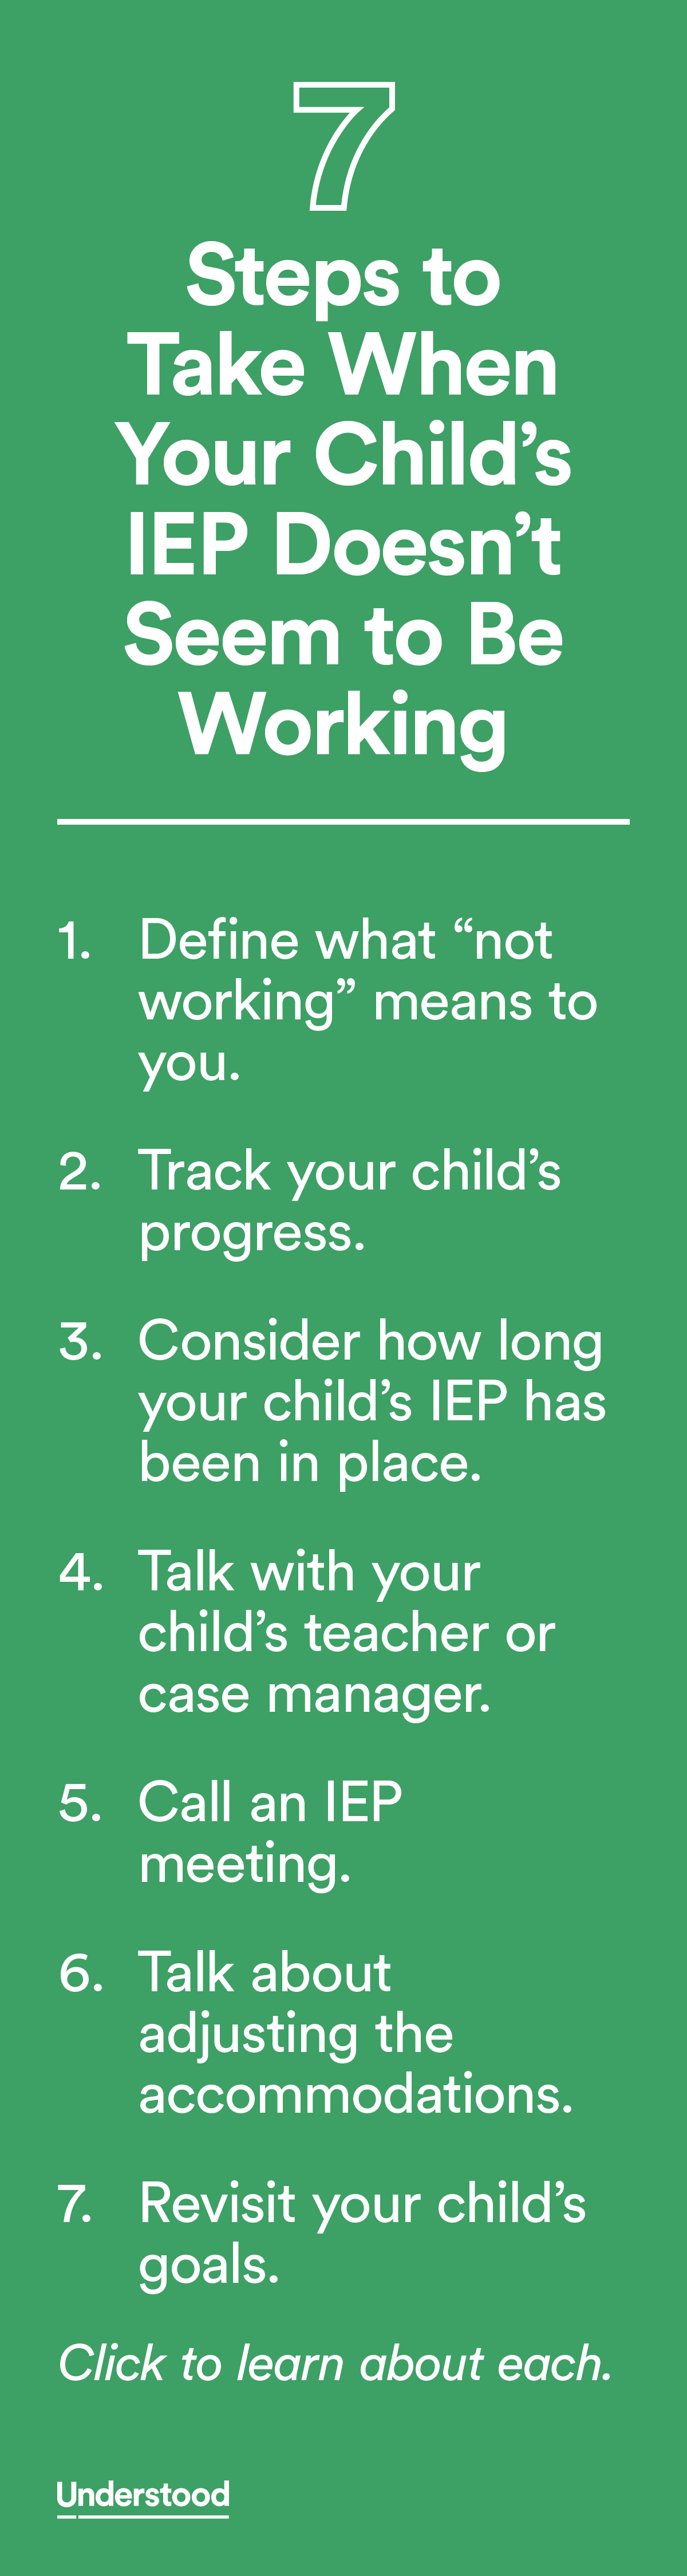 The Teacher Isnt Following My Childs >> My Child S Iep Doesn T Seem To Be Working Now What Ieps 504